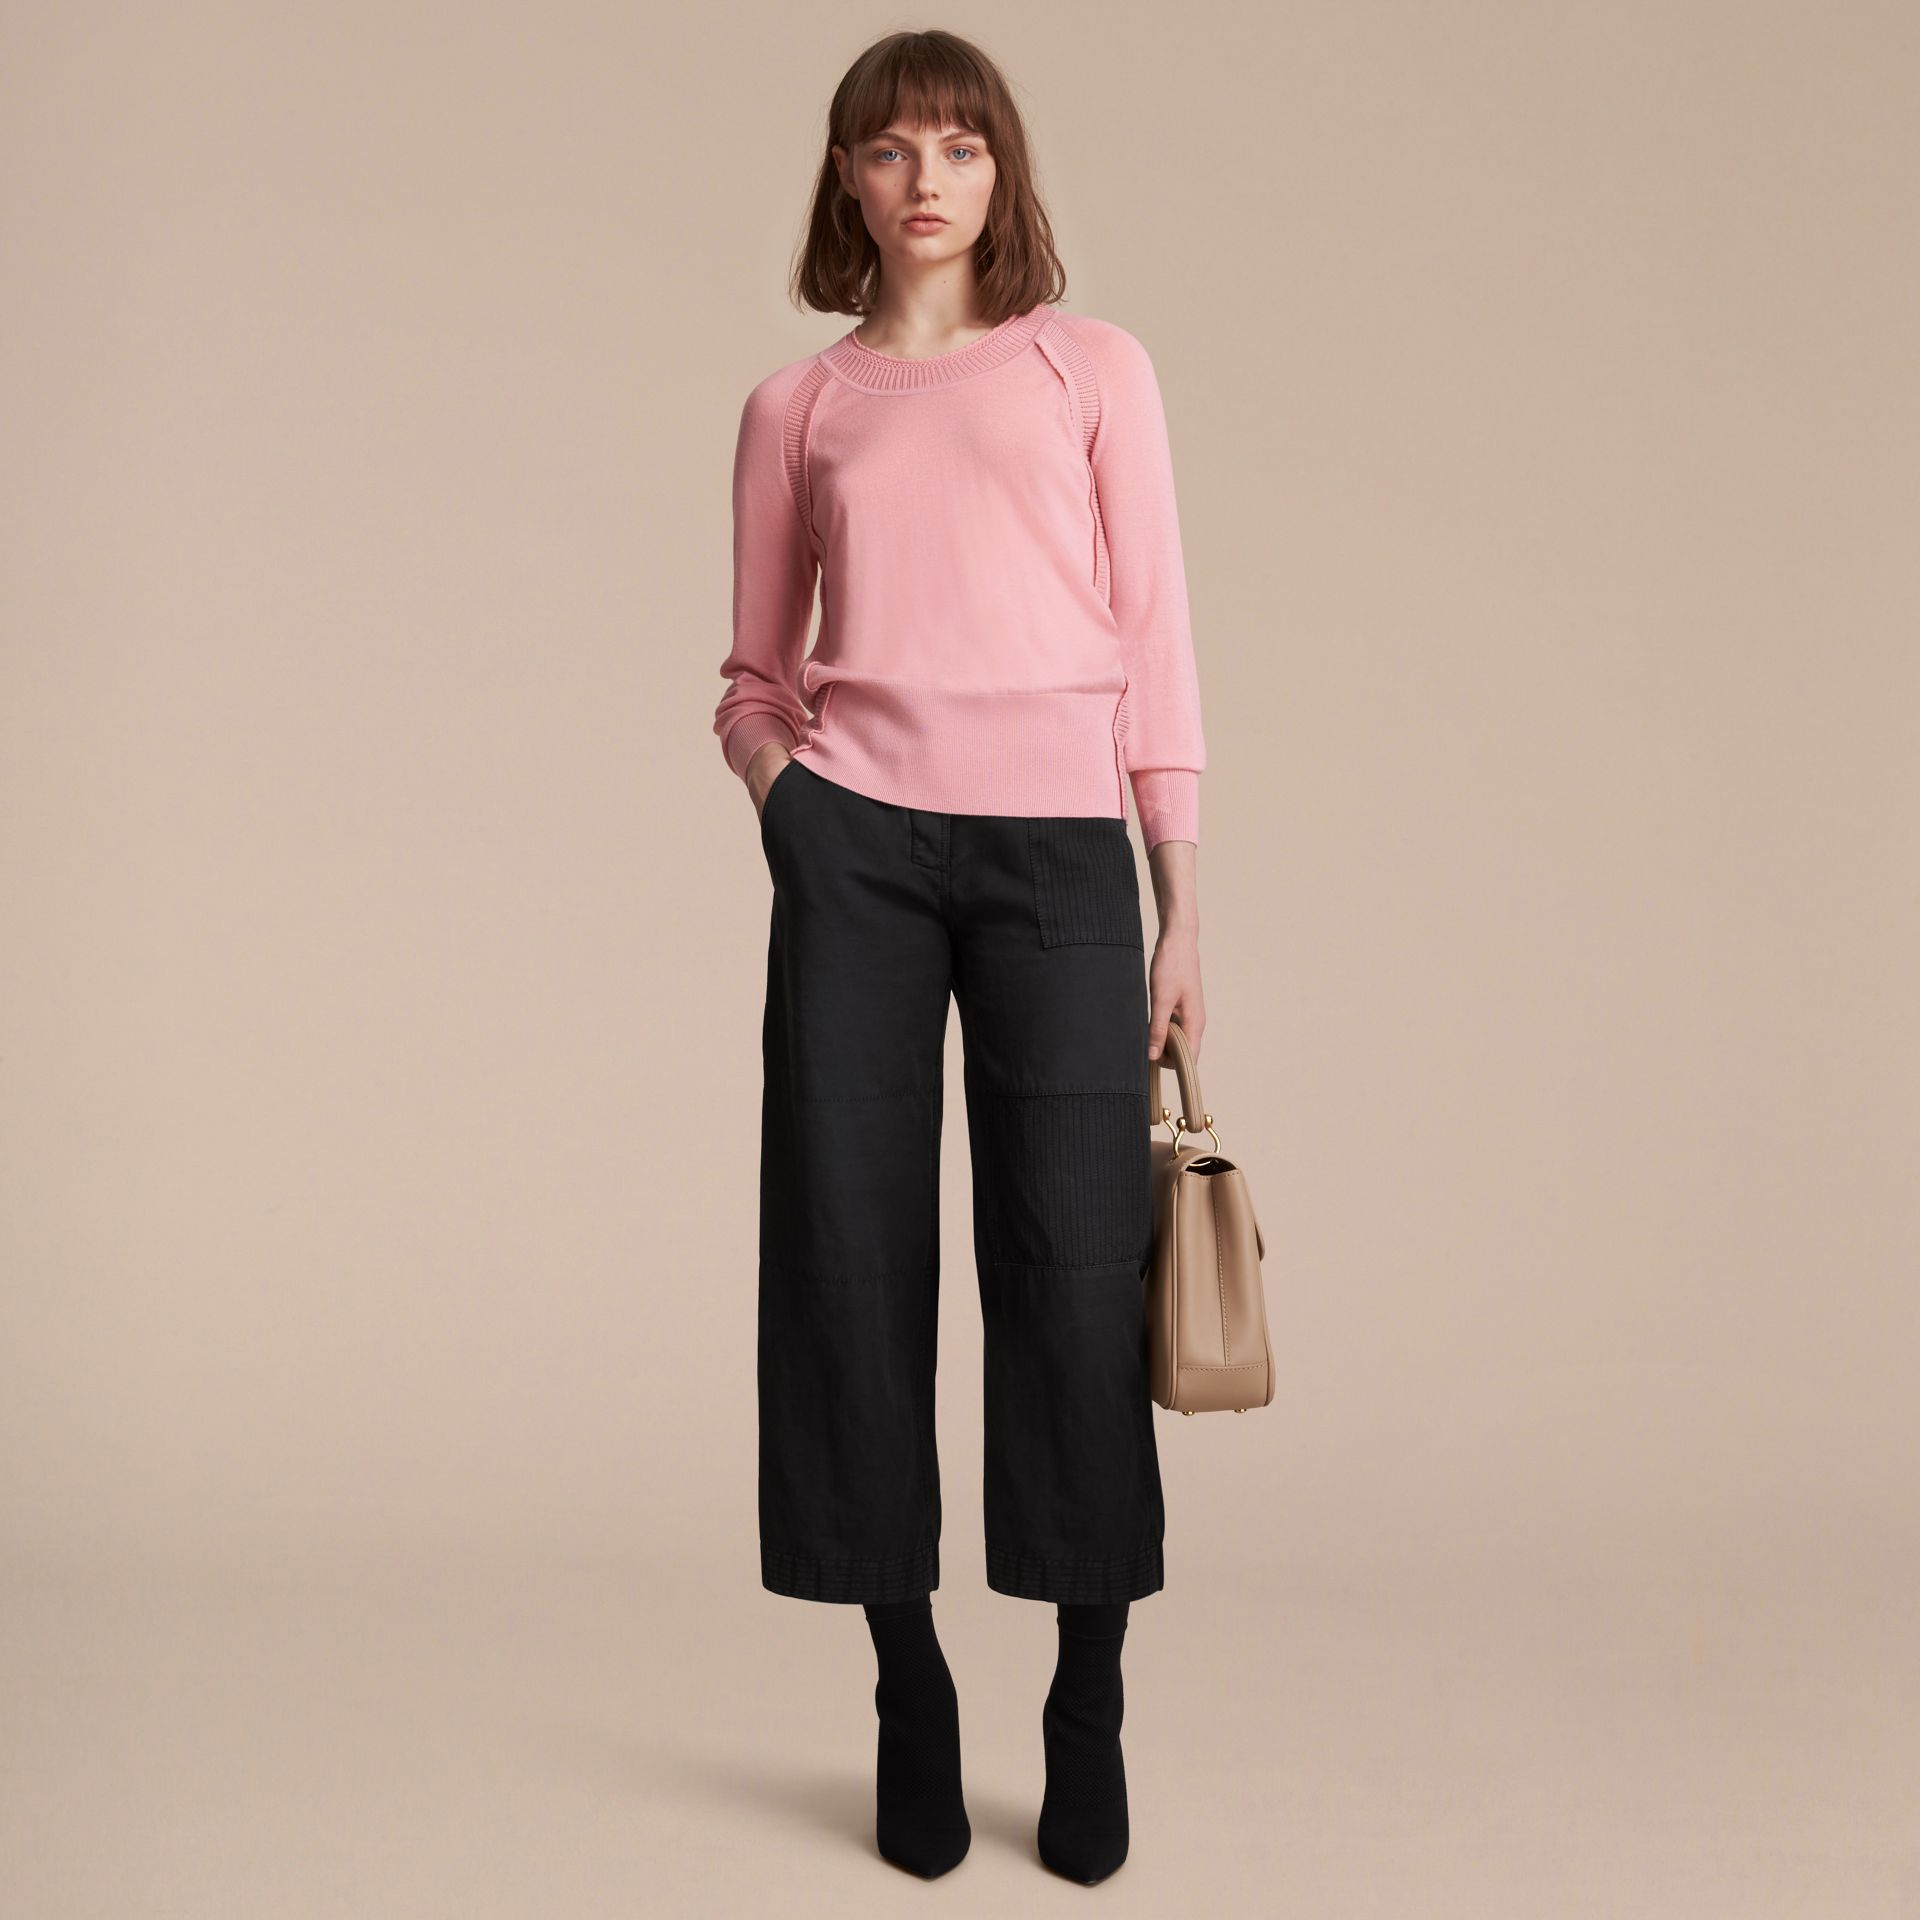 Open-knit Detail Cashmere Crew Neck Sweater in Apricot Pink - Women | Burberry Singapore - gallery image 6